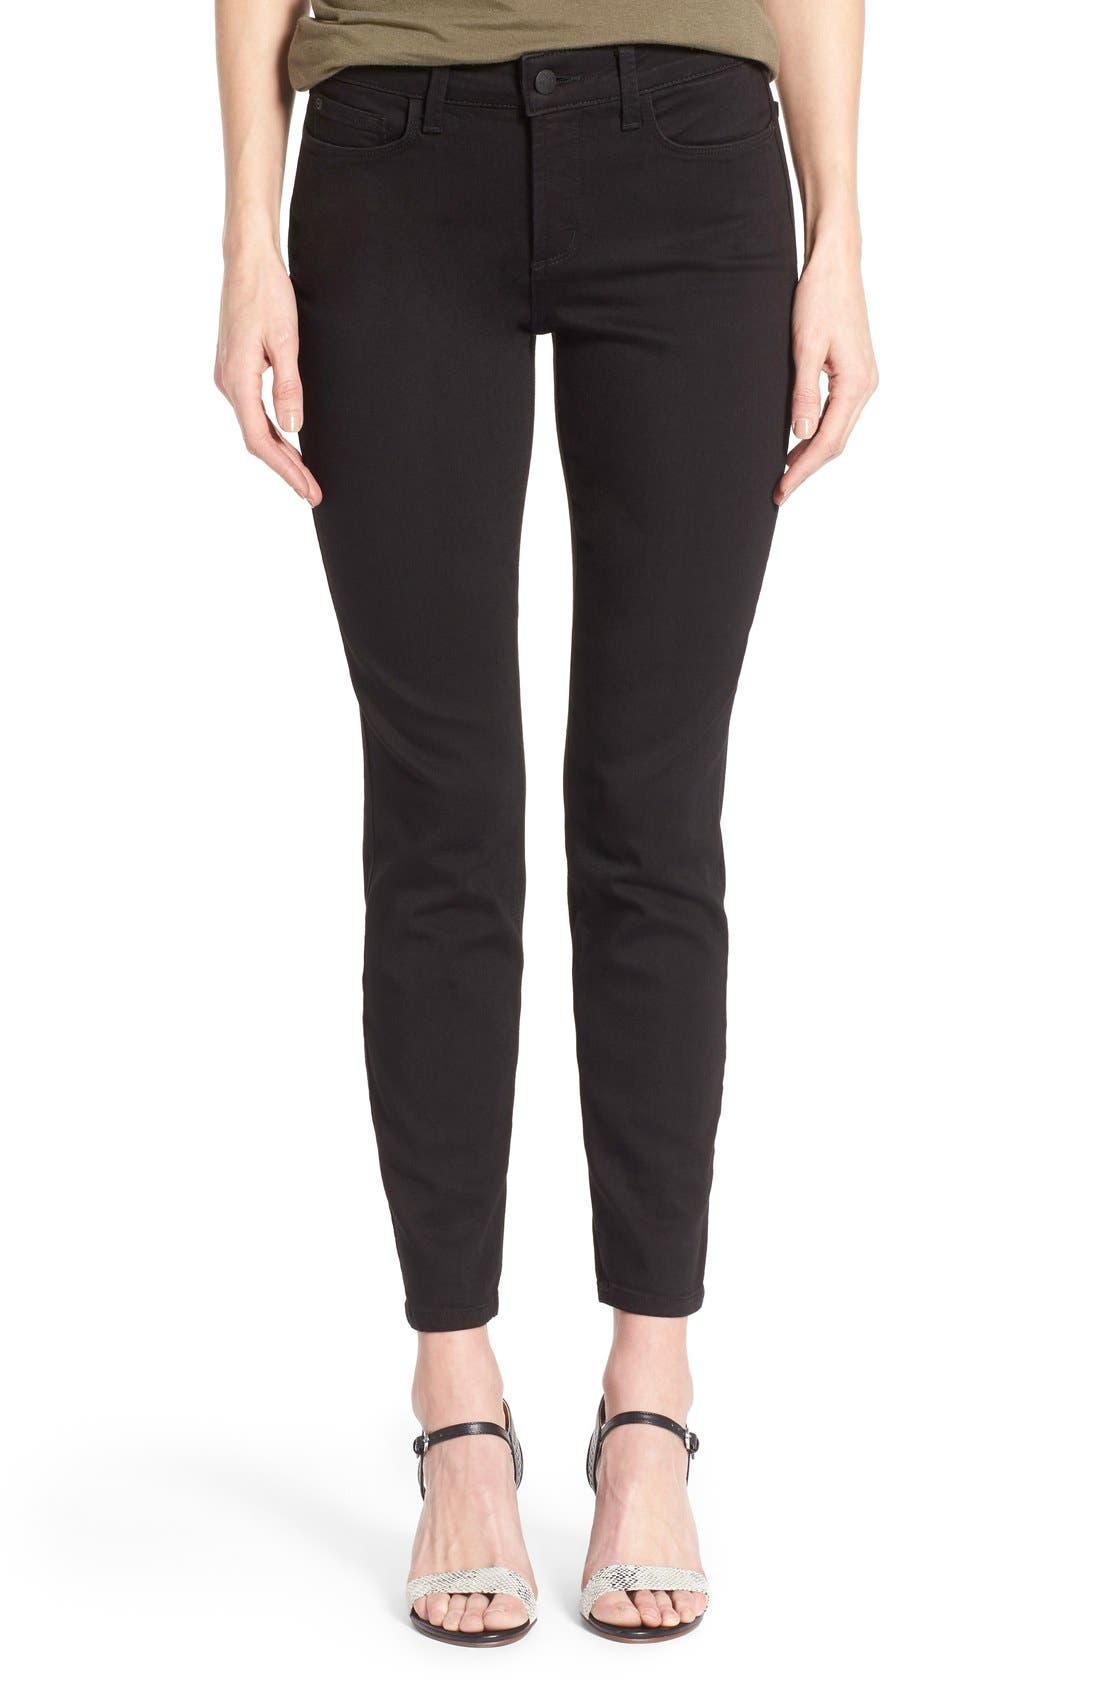 'Clarissa' Stretch Ankle Skinny Jeans,                         Main,                         color, Black Garment Wash